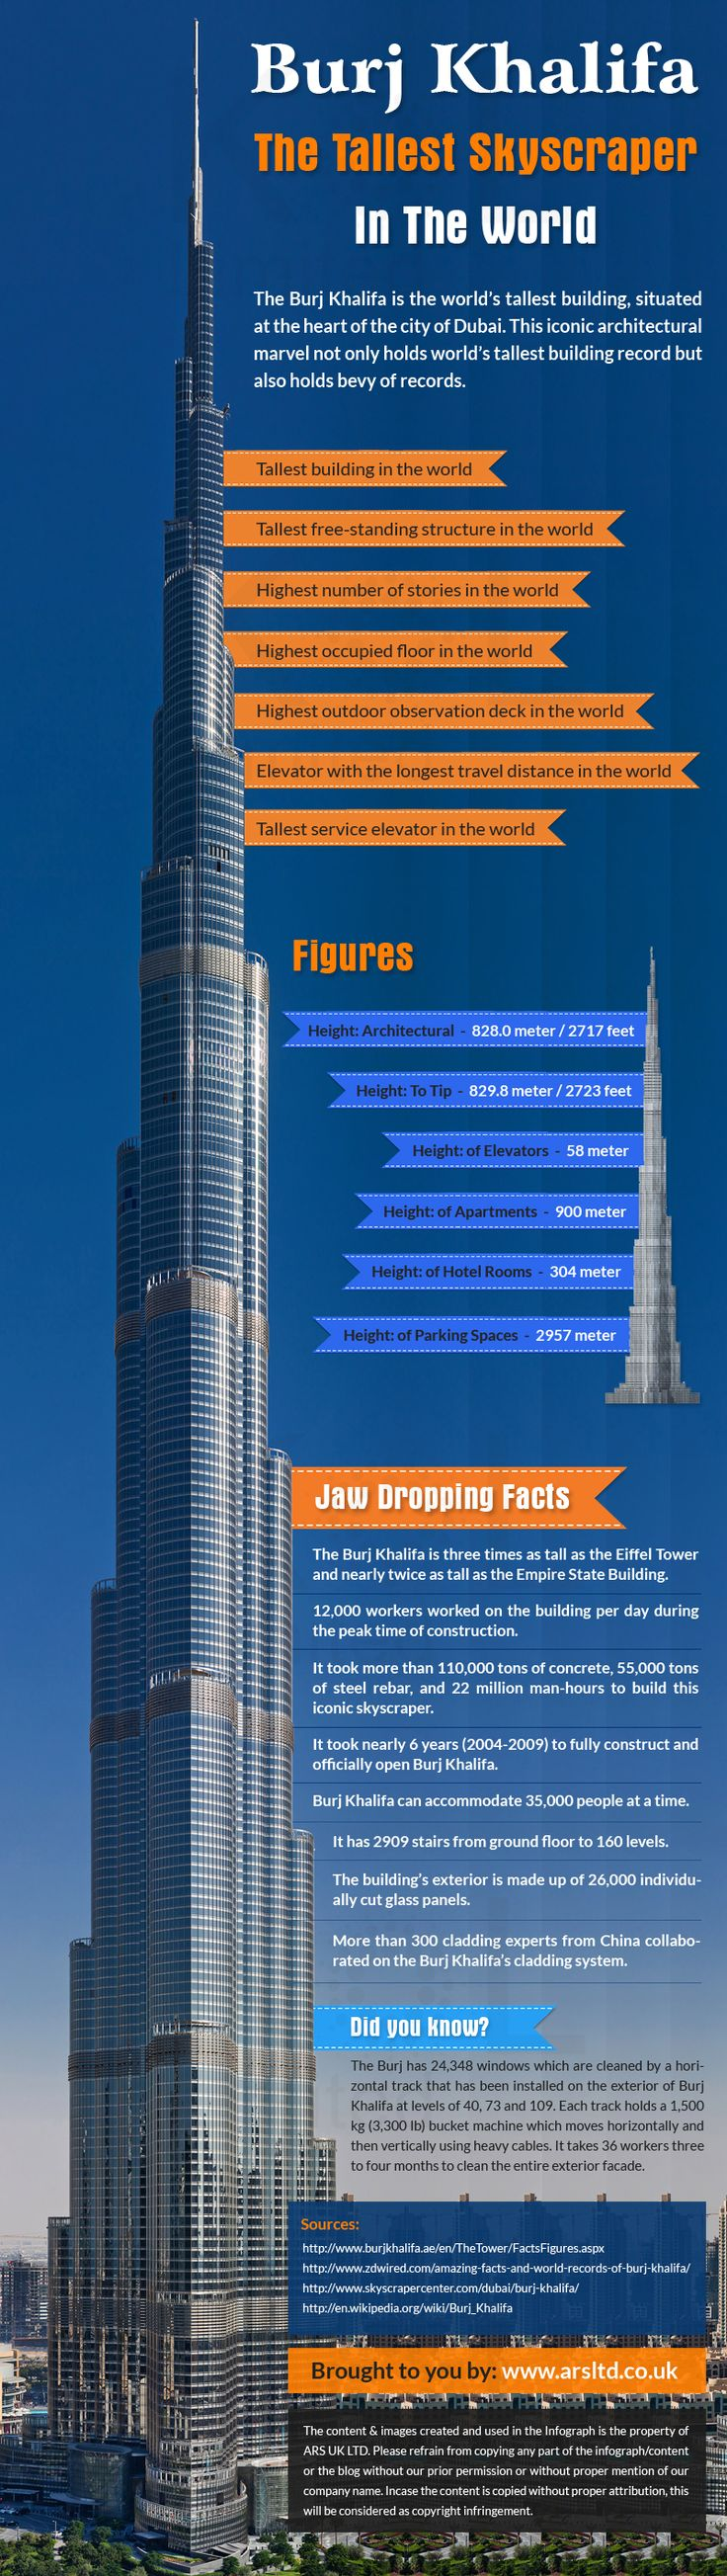 Burj Khalifa: The Tallest Skyscraper In The World